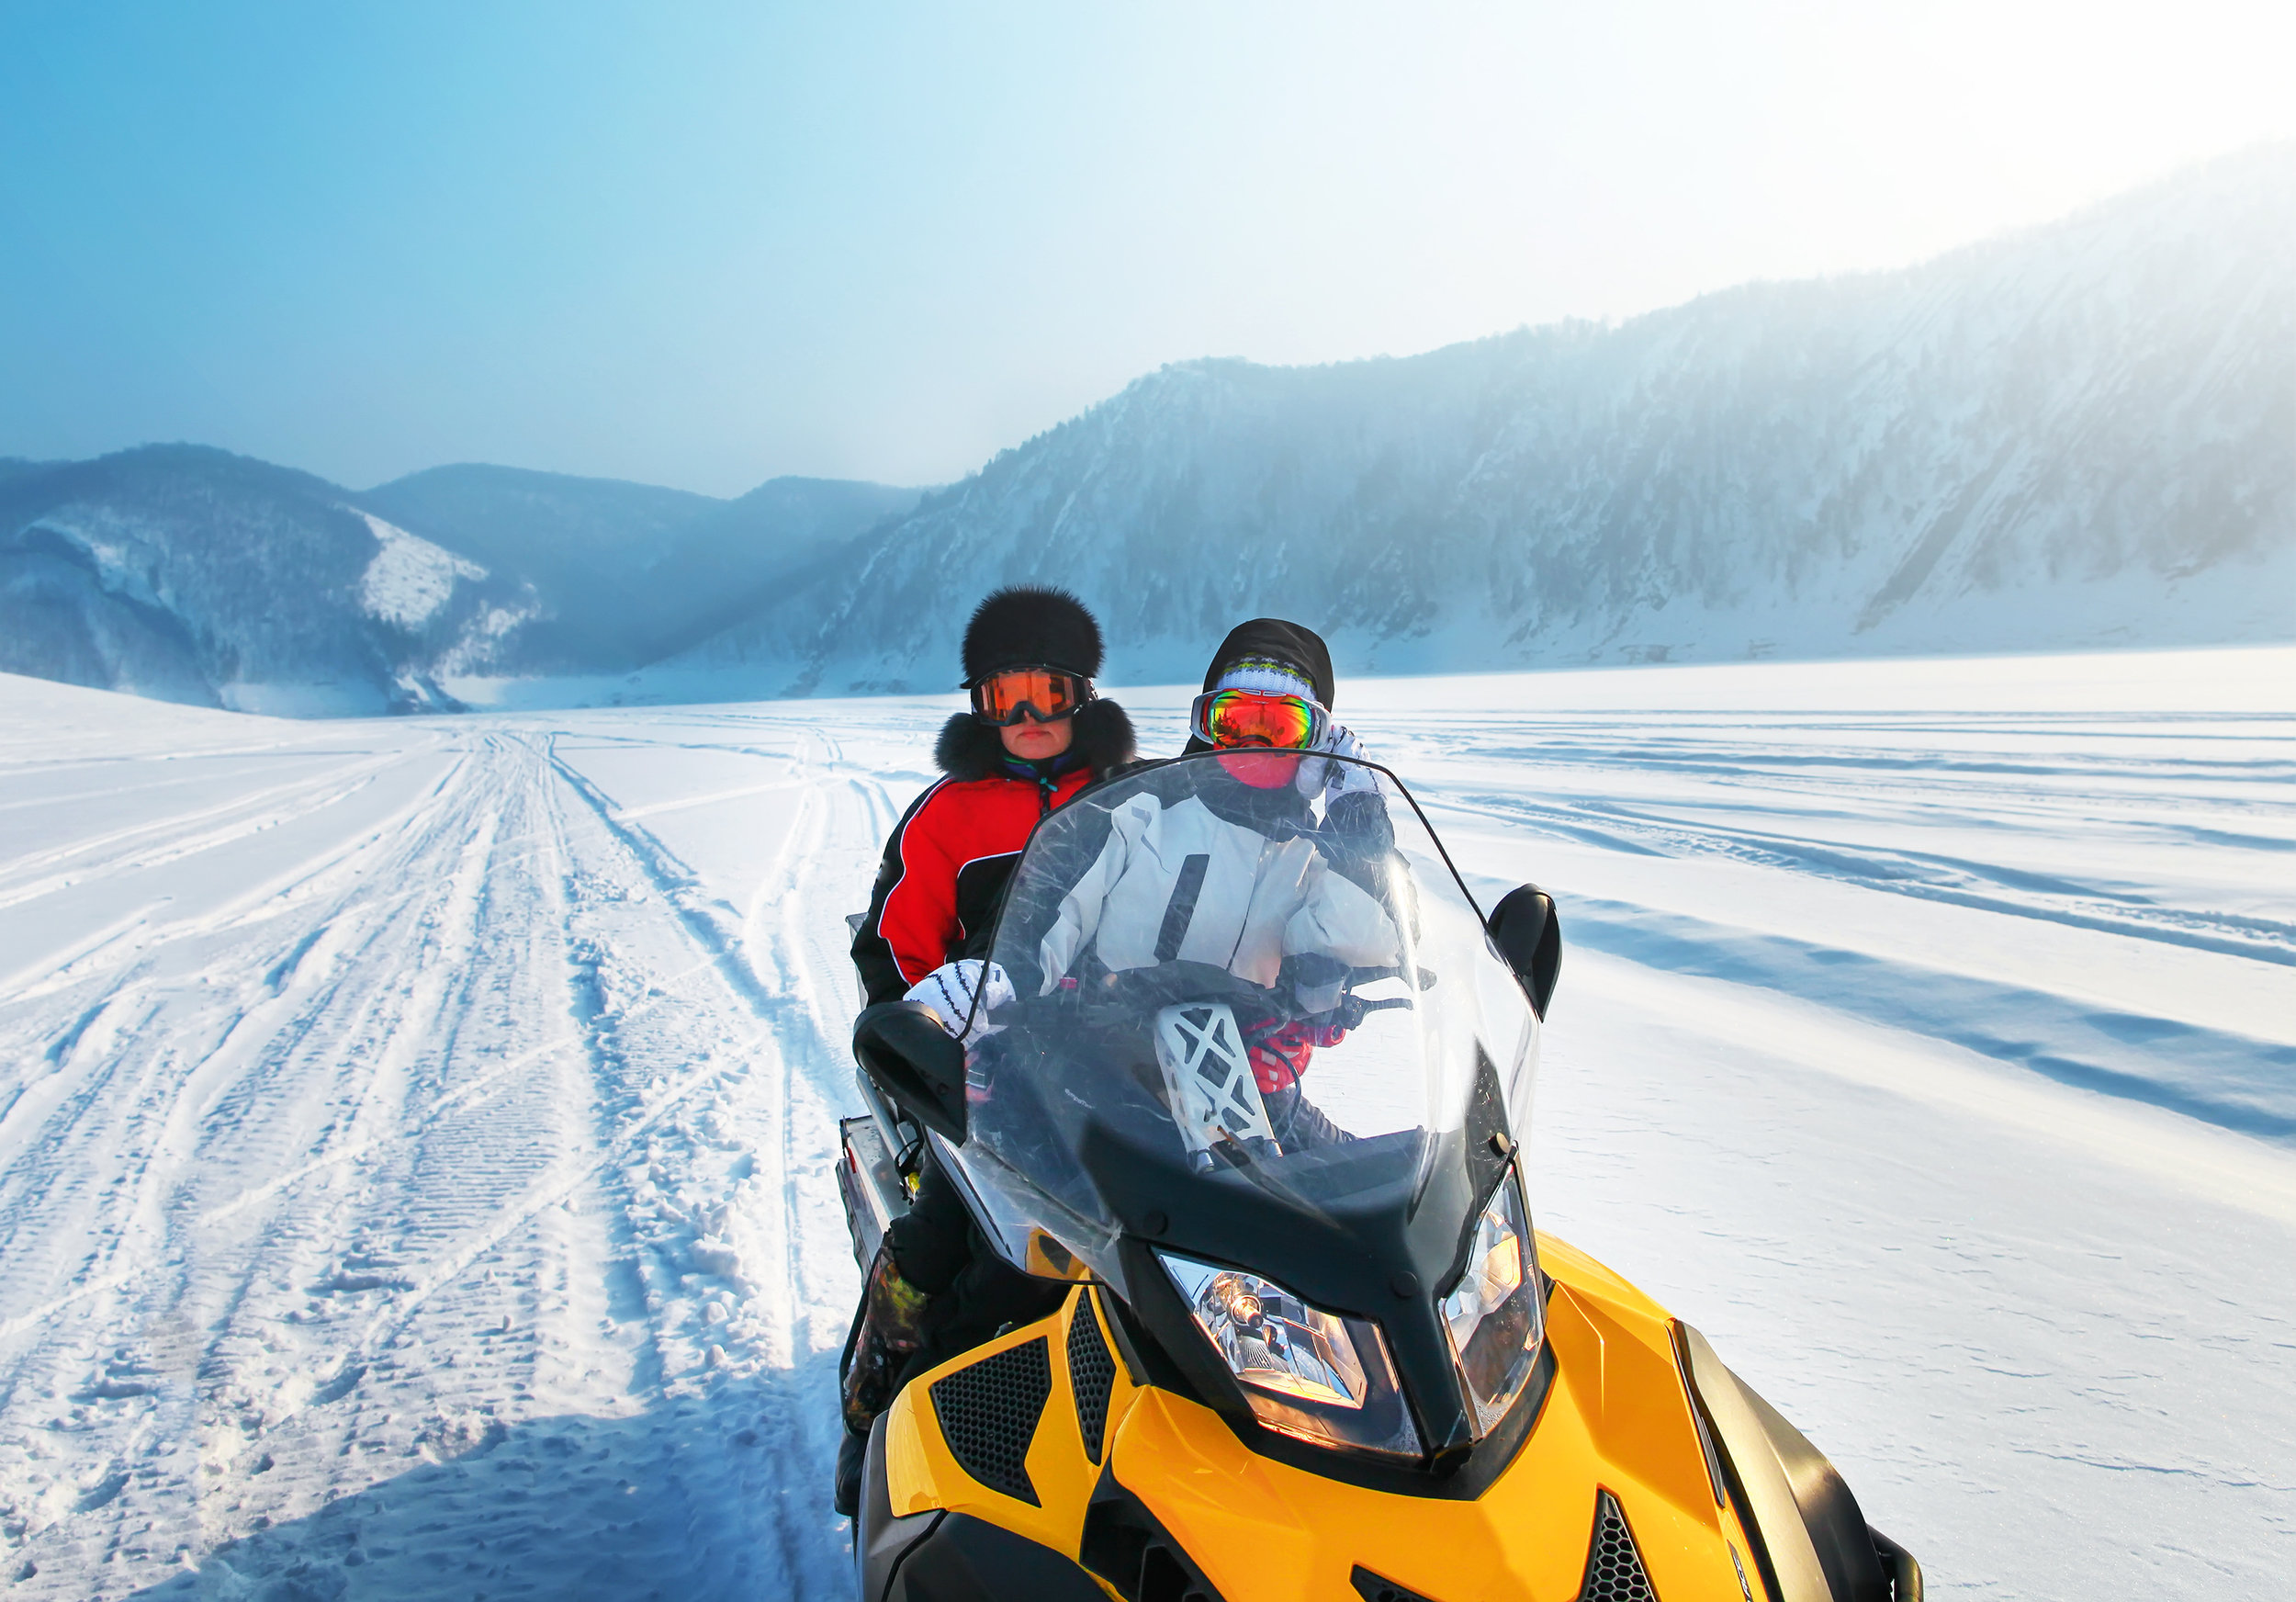 Man and woman riding on snowmobile